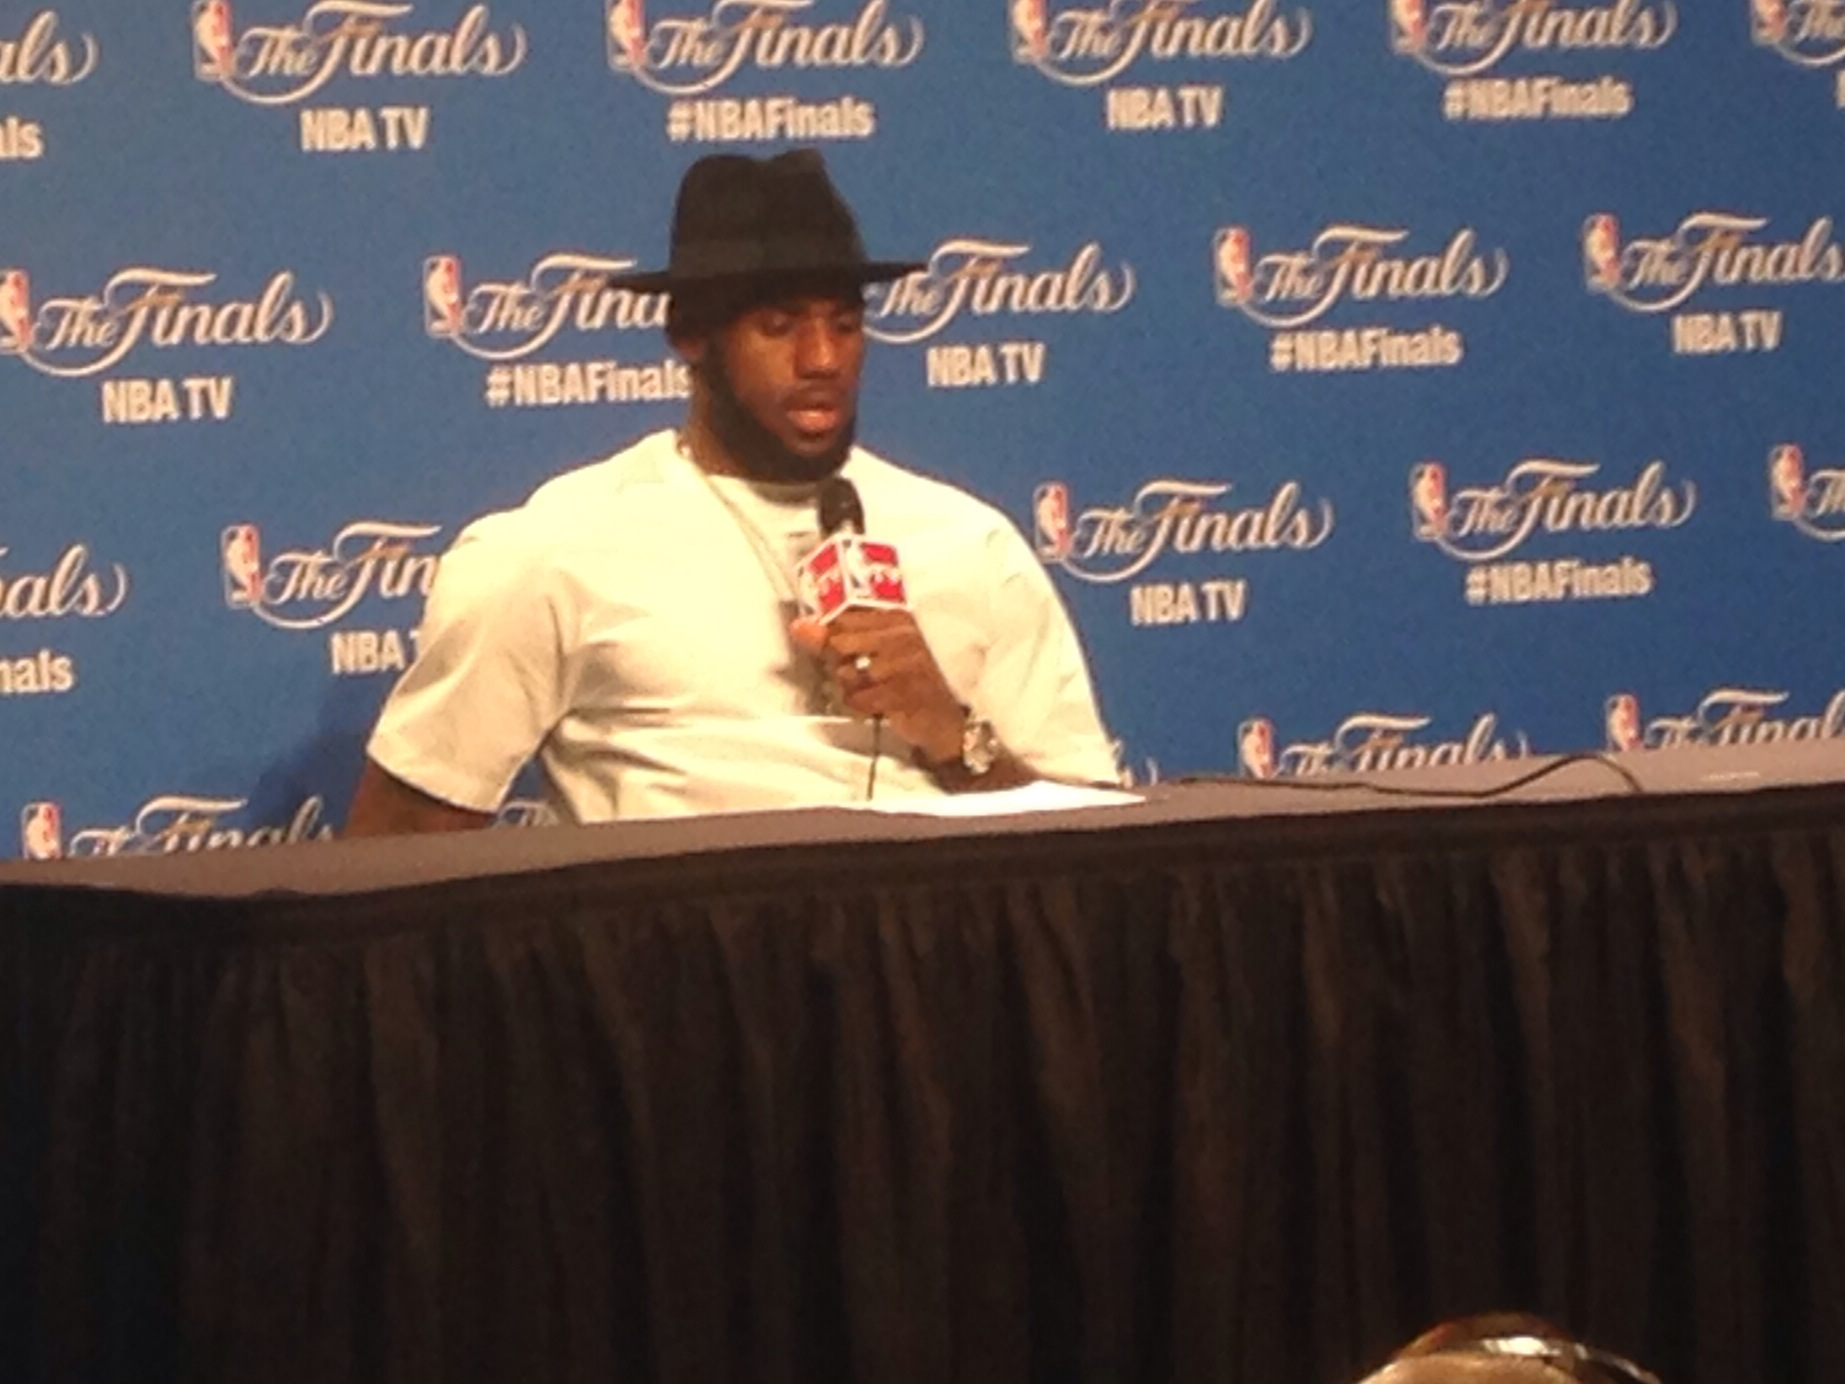 LeBron James Podium Game 4 FINALS